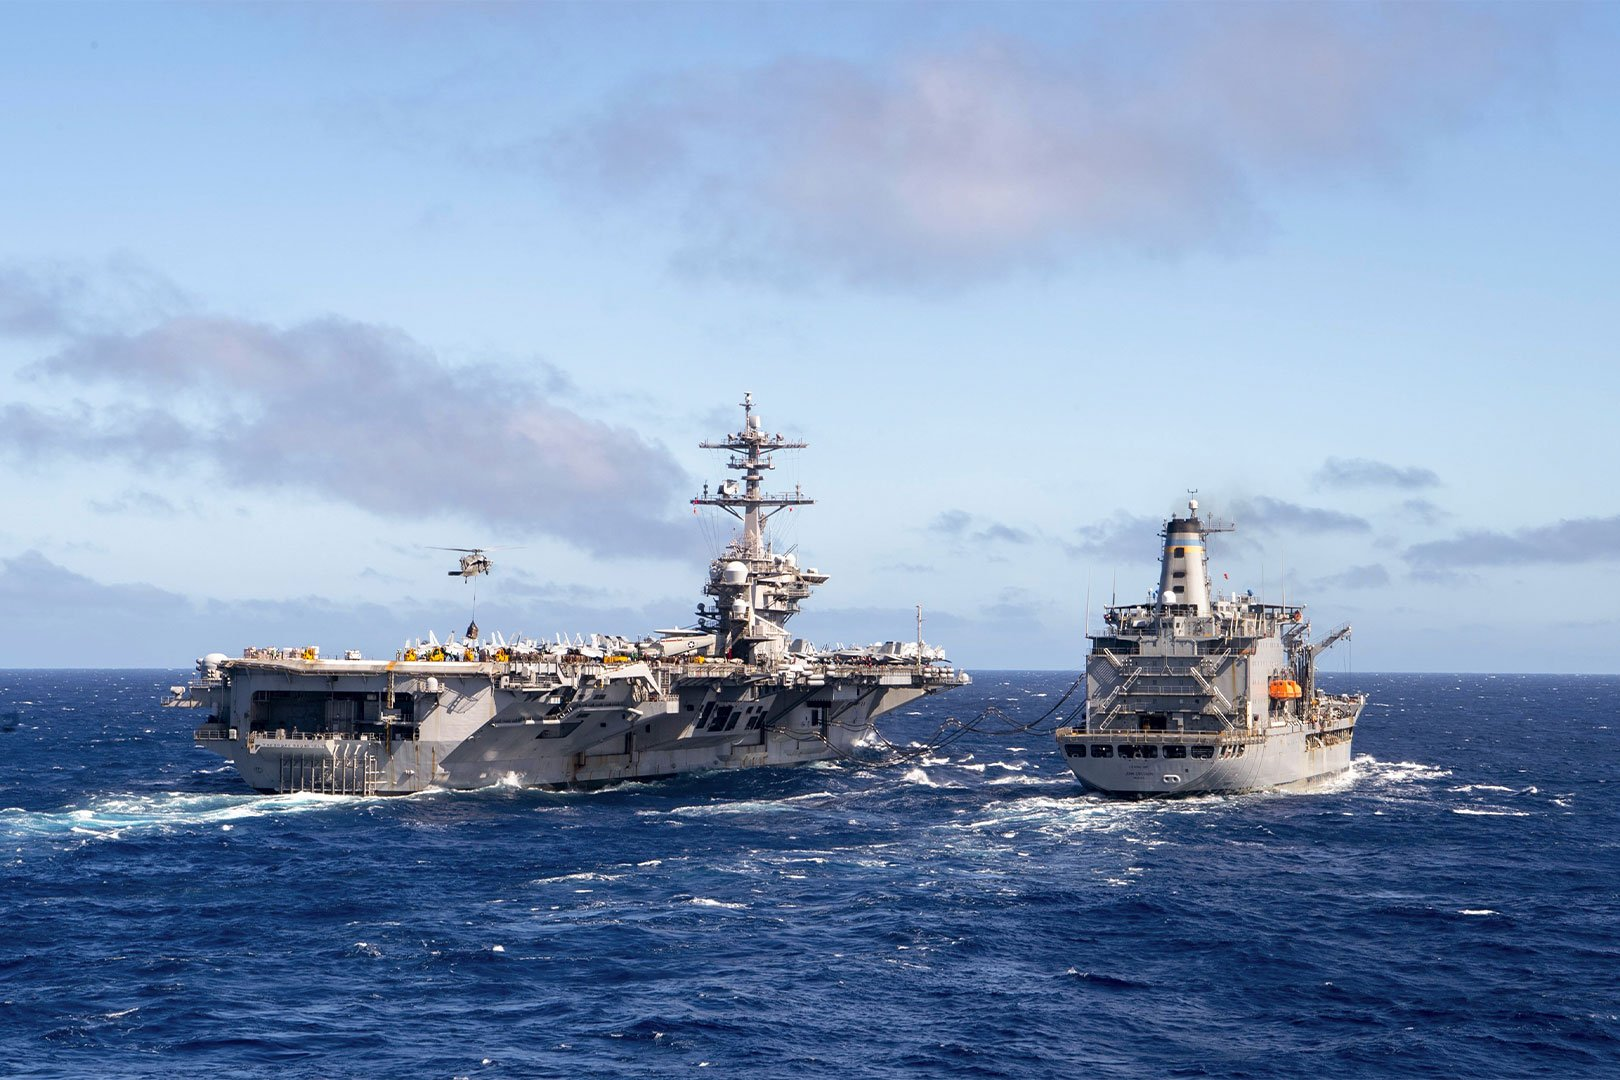 Naval Ships Traveling In The Ocean